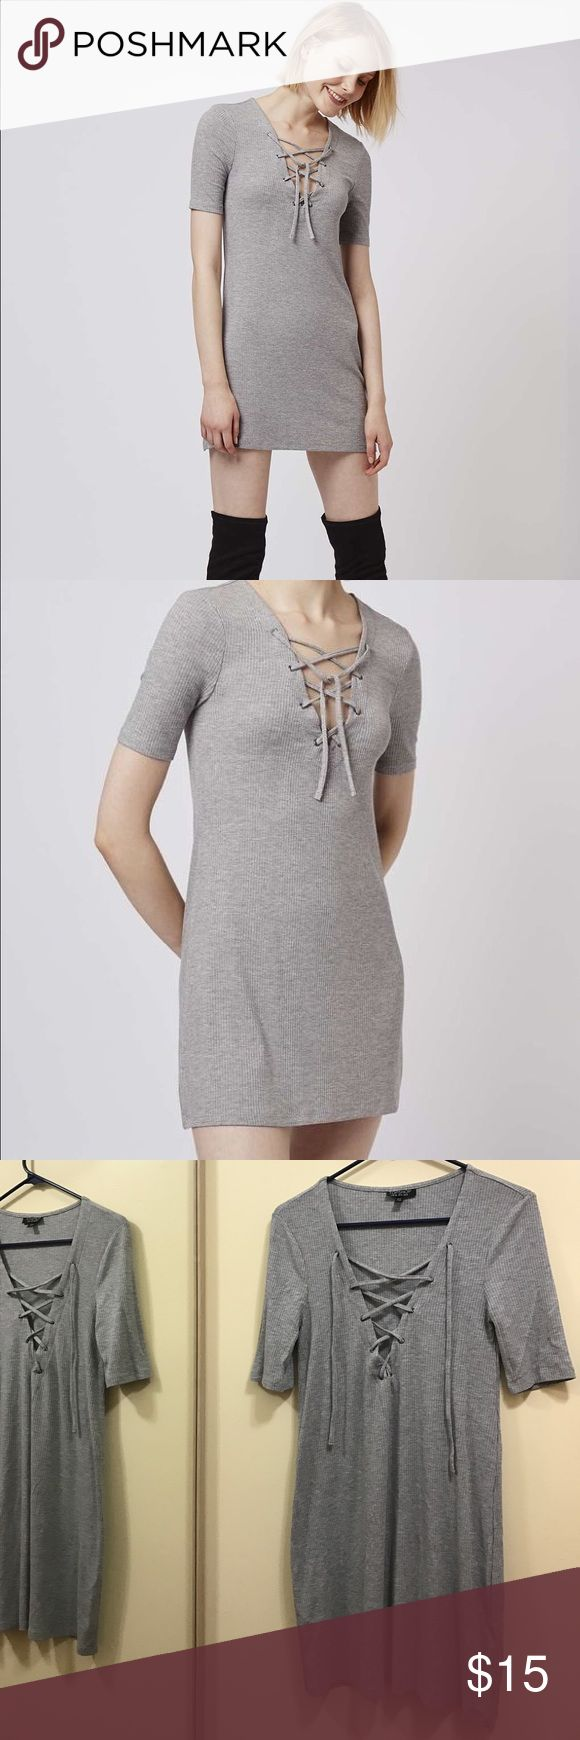 SALE Topshop Lace Up Tunic Dress Super soft dress in ribbed gray material. Perfect condition - only worn once!! Lower tag removed. Smoke/pet free home. Moving soon so need to purge closet!! Make an offer 💕 Topshop Dresses Mini